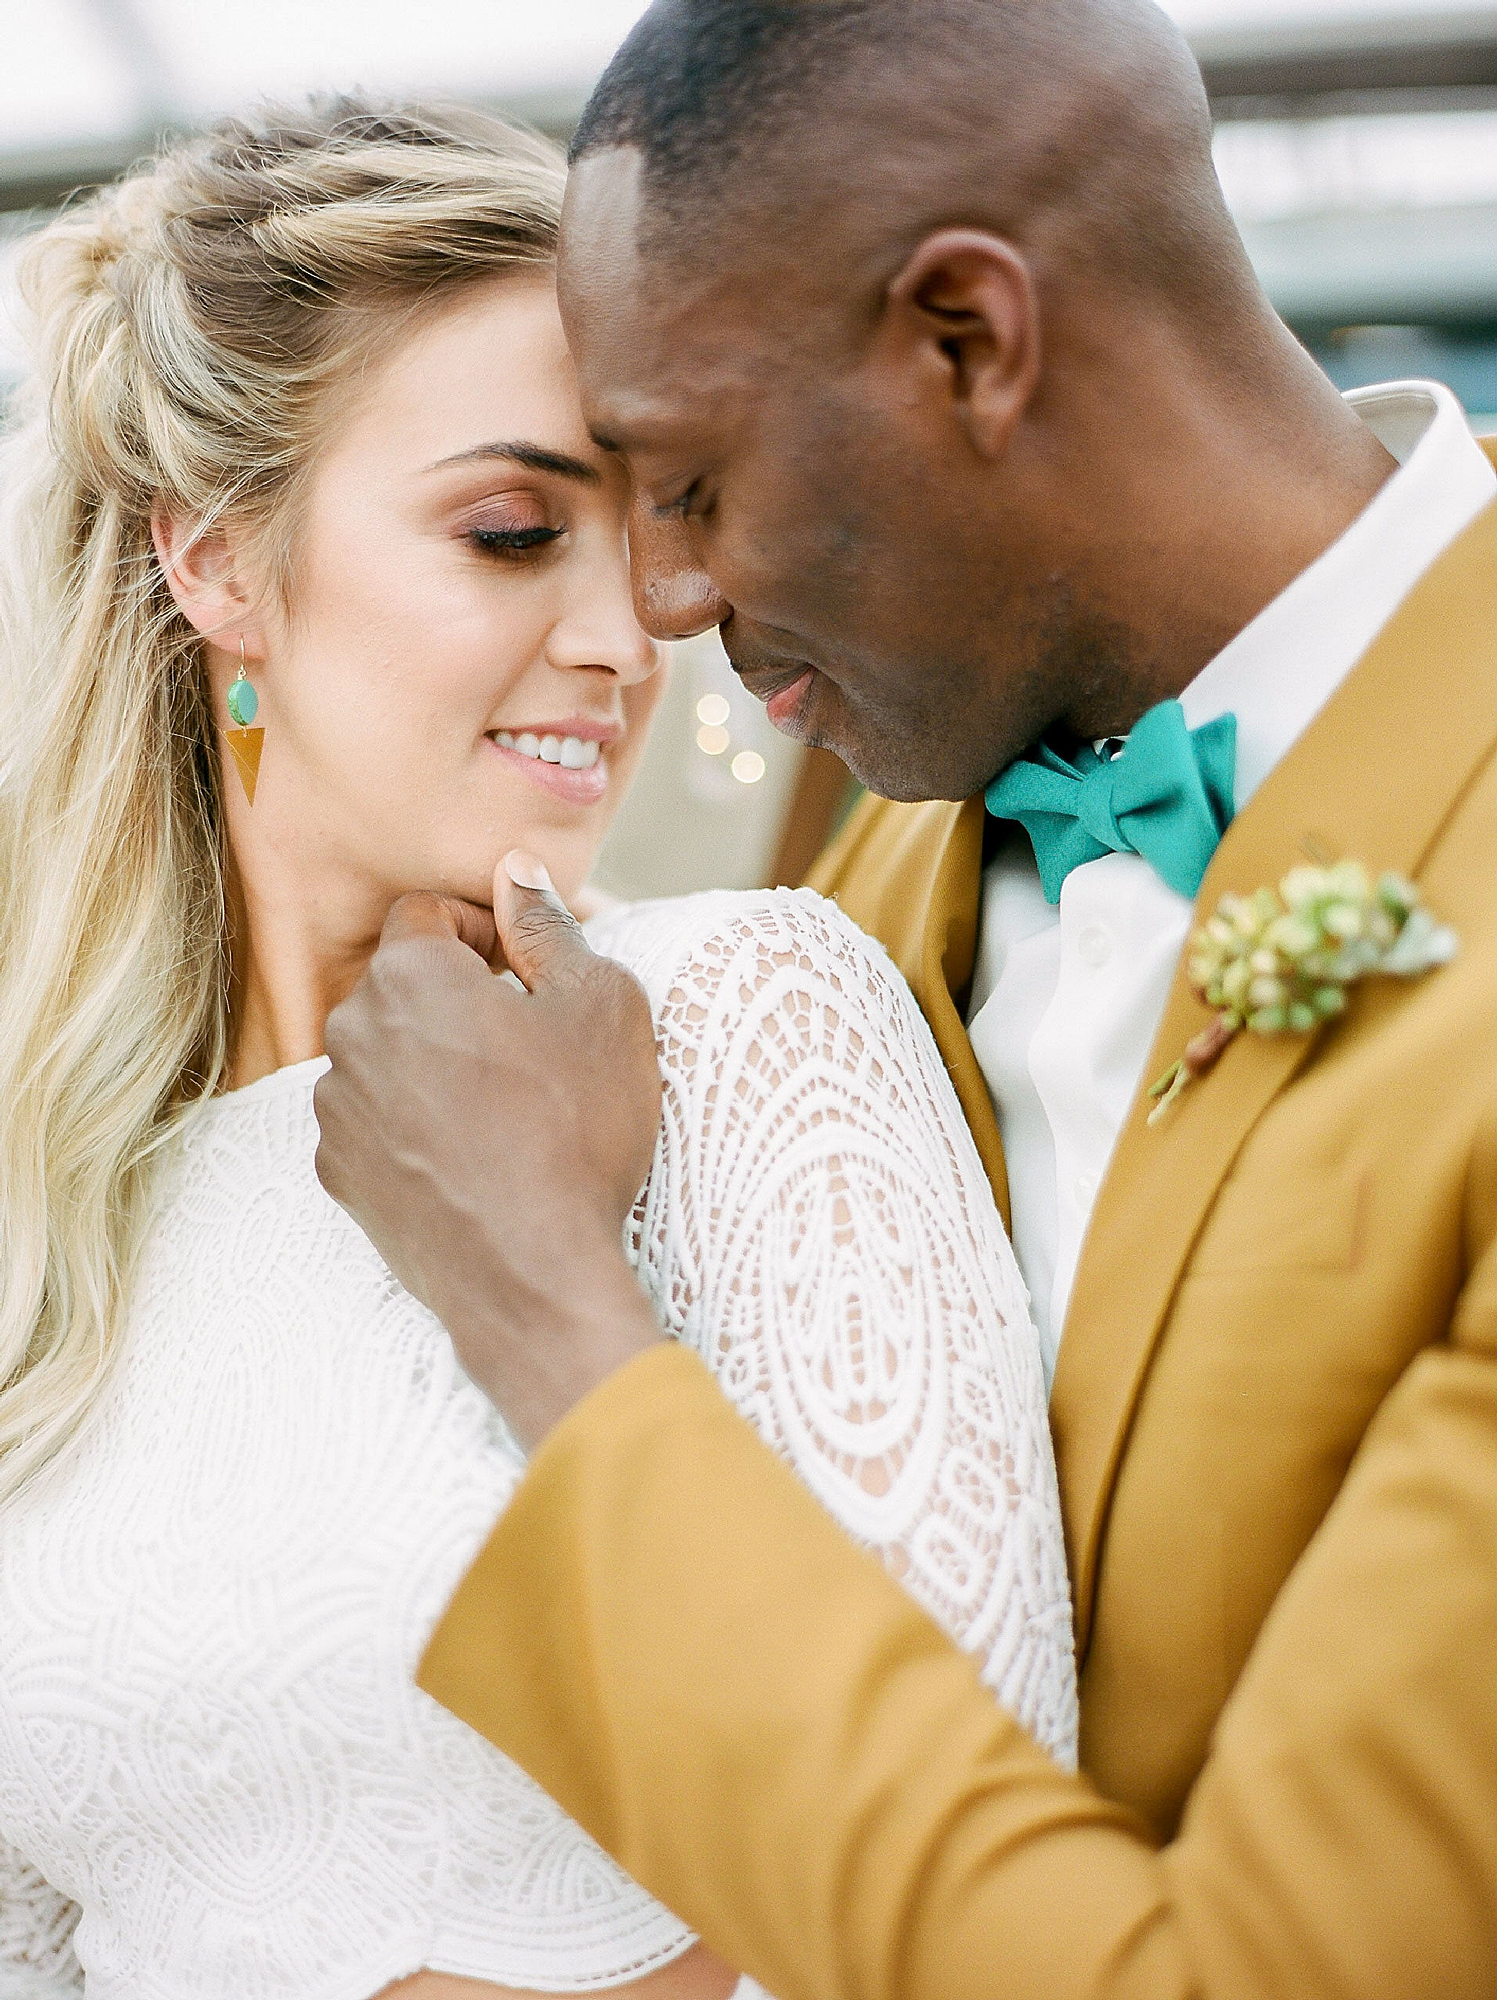 Colorful and Vibrant Wedding Photography at Fairmount Horticultural Center by Magdalena Studios 0014